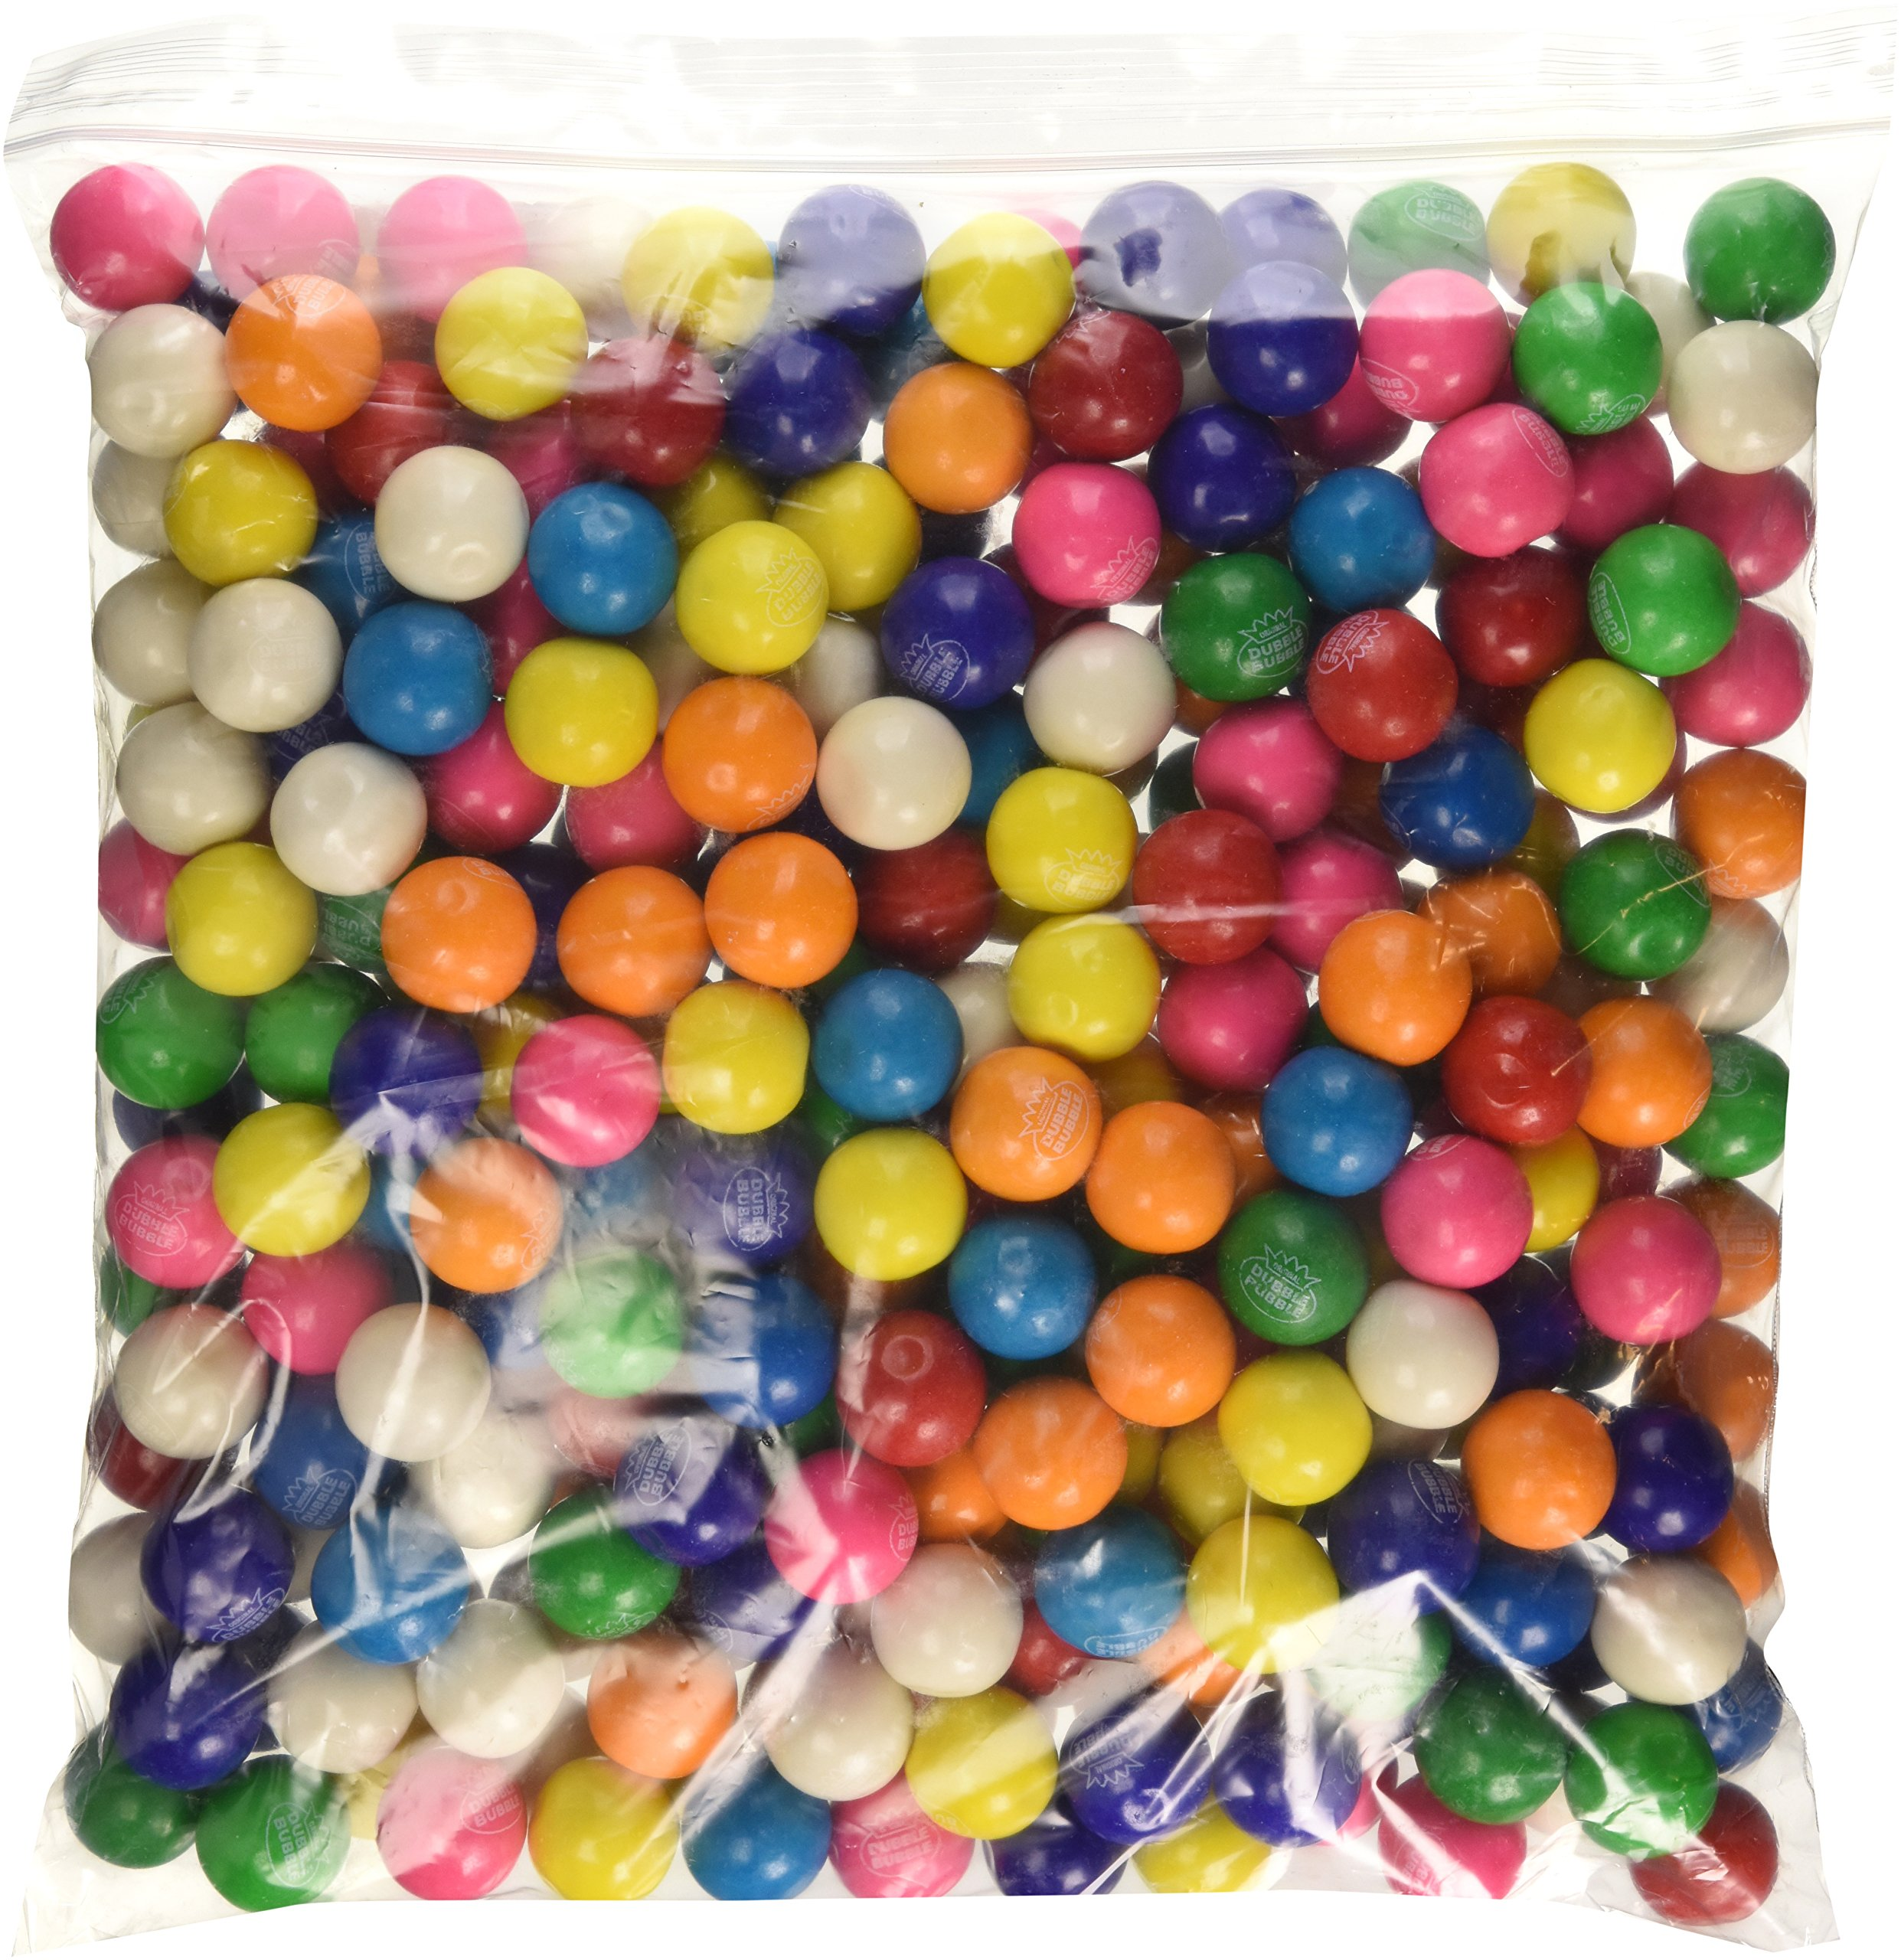 Dubble Bubble One Inch Gumballs Assorted Flavors 5 Pound Bag by FIRST CLASS VENDING